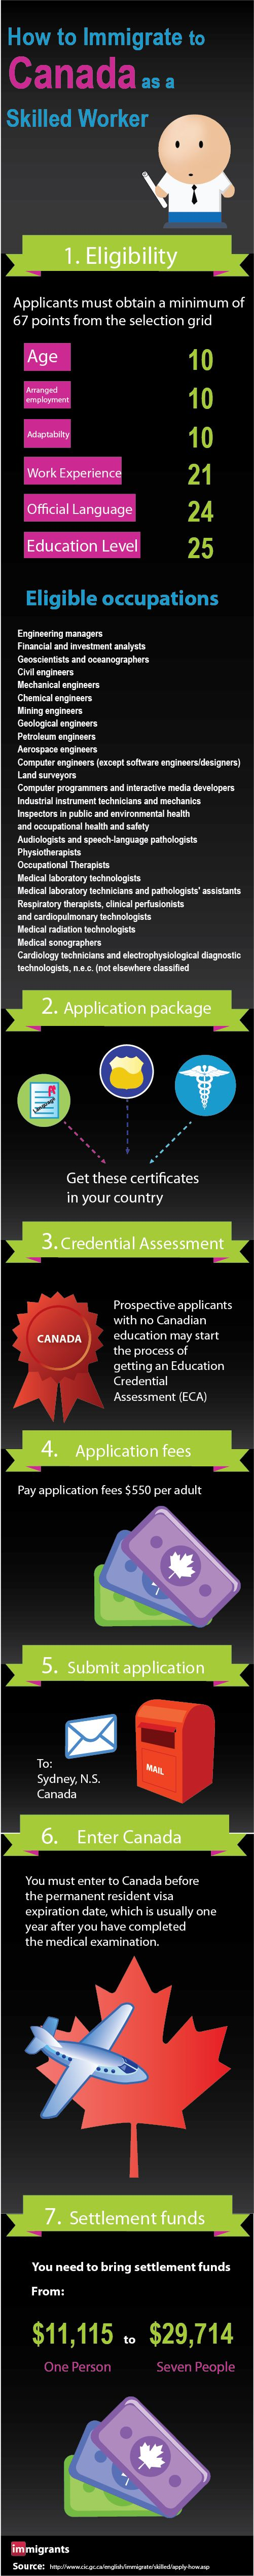 How to immigrate to Canada as a Skilled worker